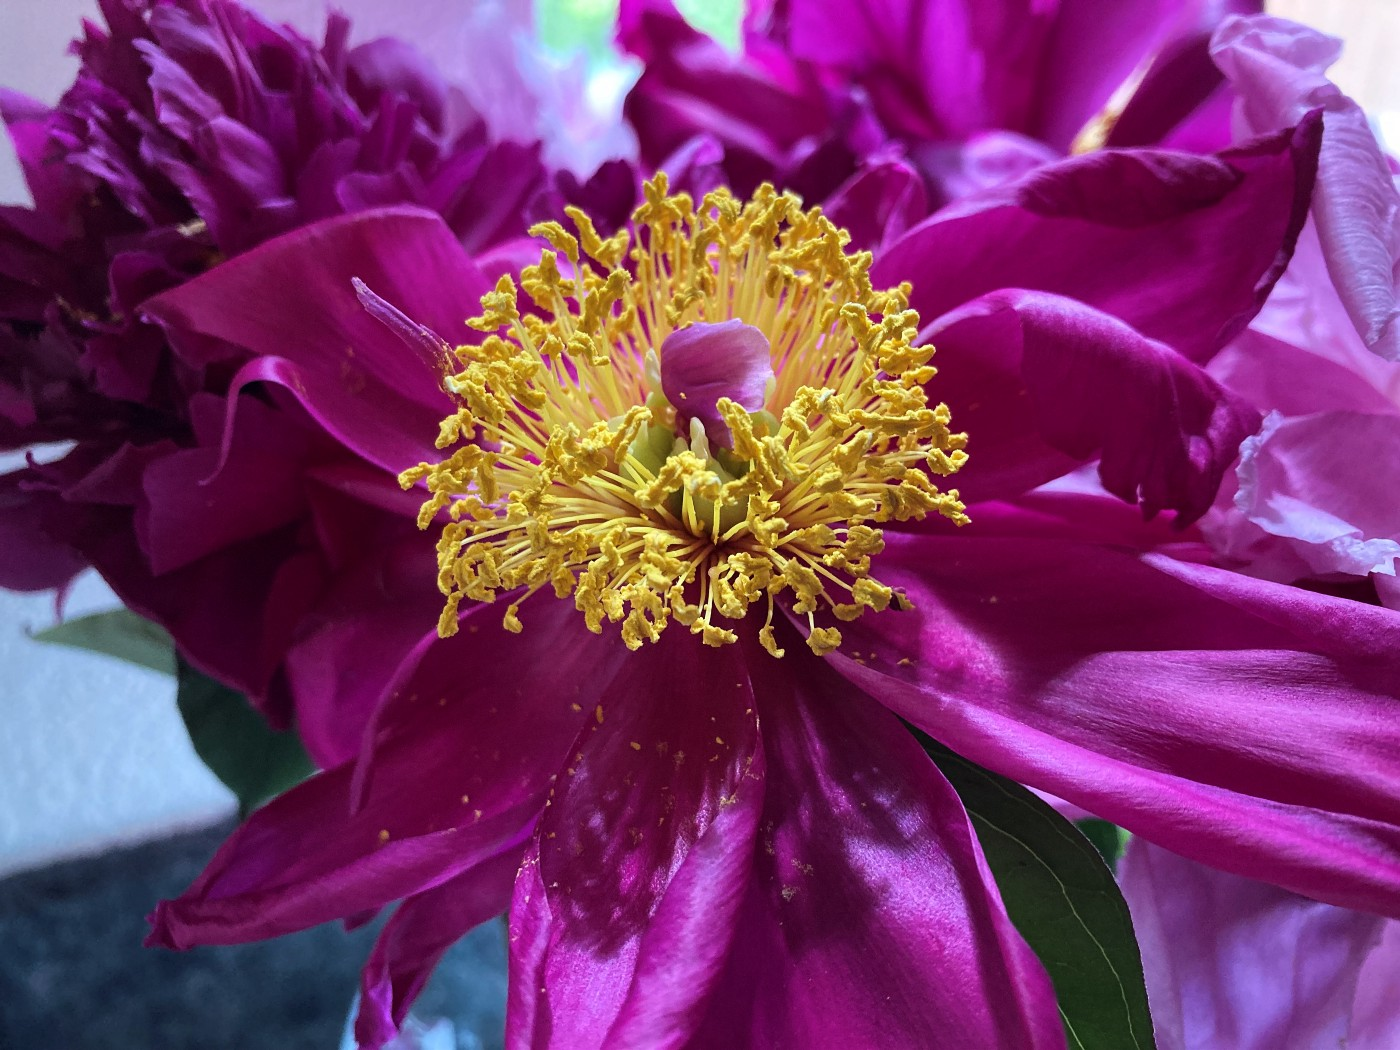 A bright pink peony with a yellow center.